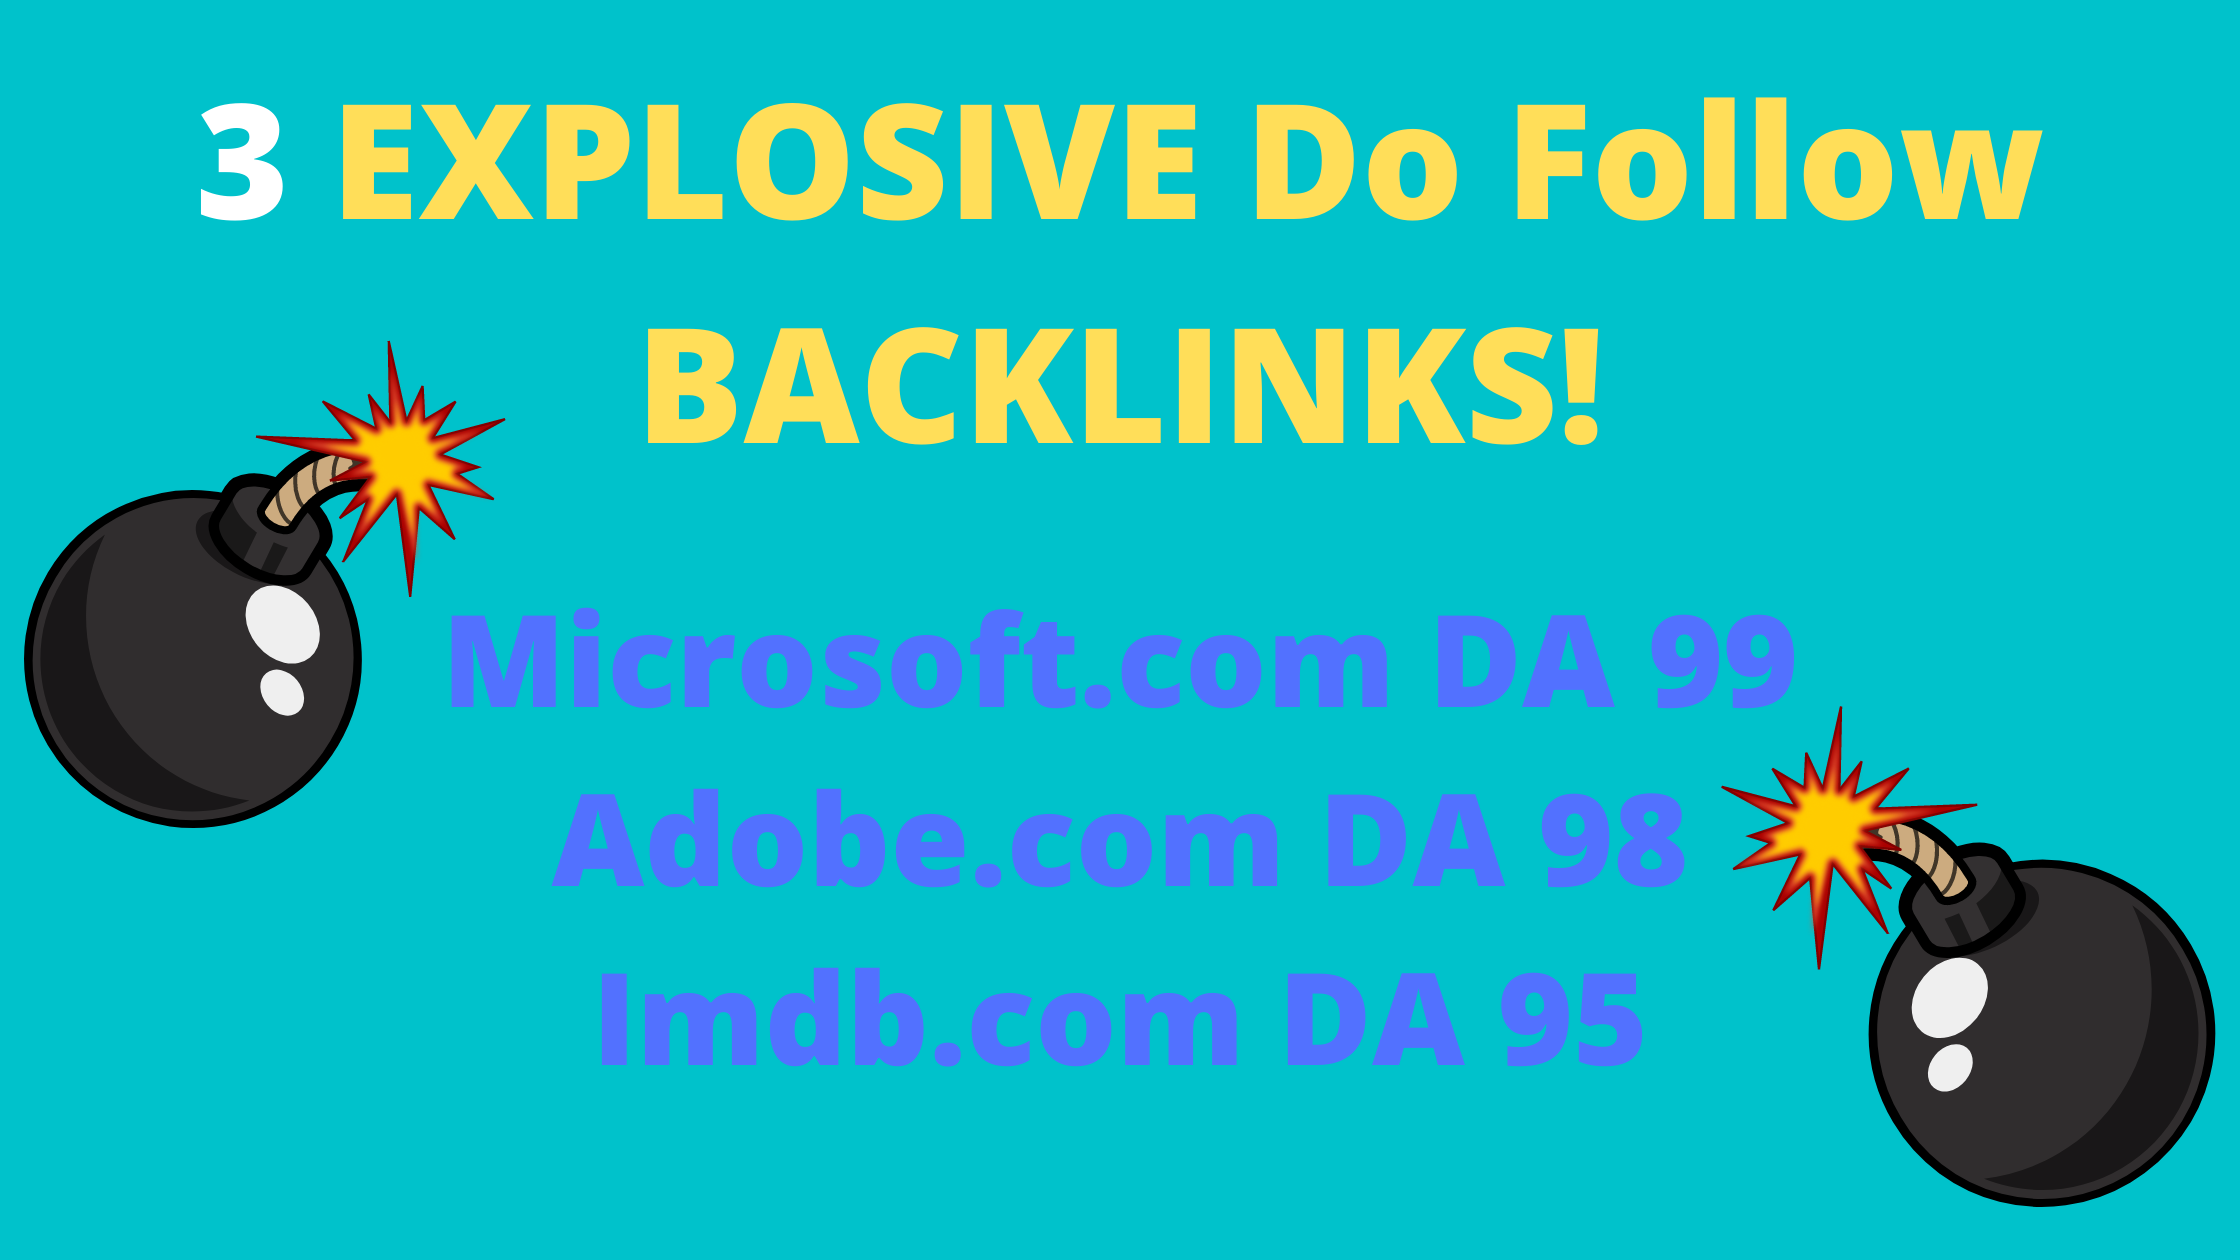 3 Do Follow Backlinks from Microsoft DA 99,  Adobe DA 98 and Imdb DA 95